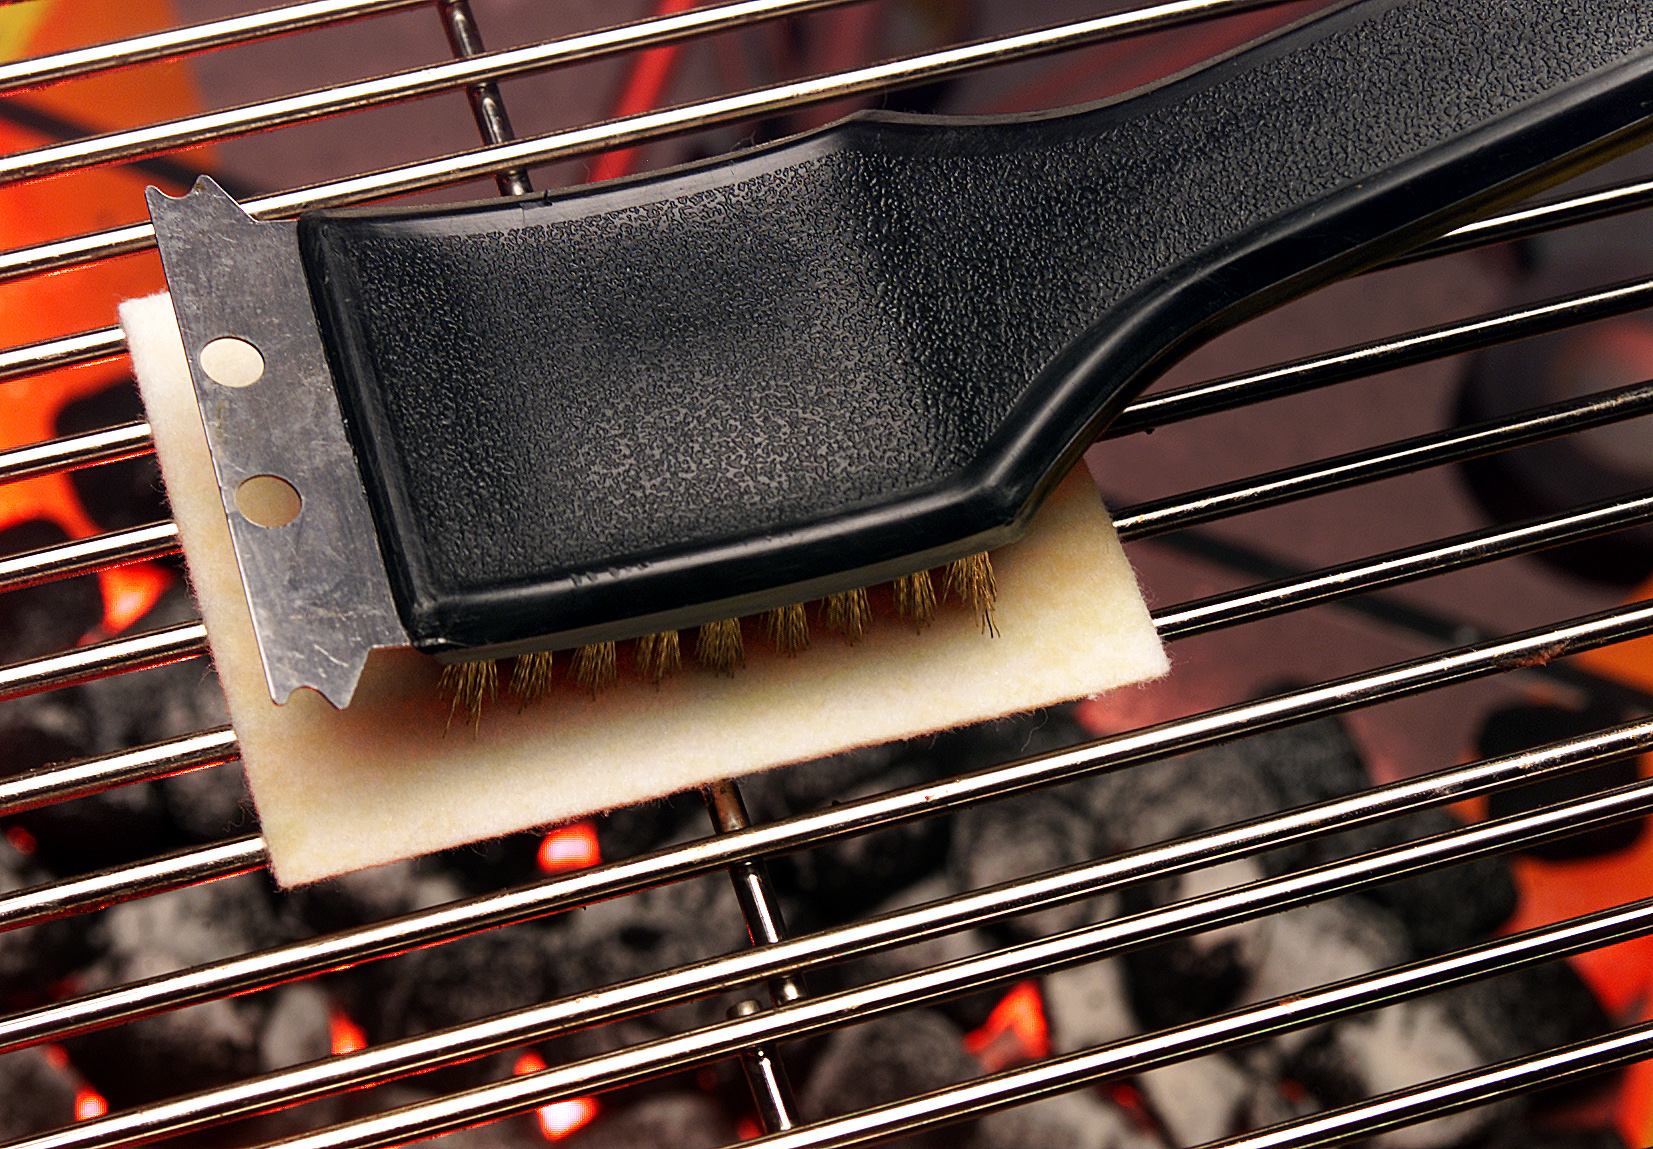 This Grilling Tool Could Send You to the Emergency Room